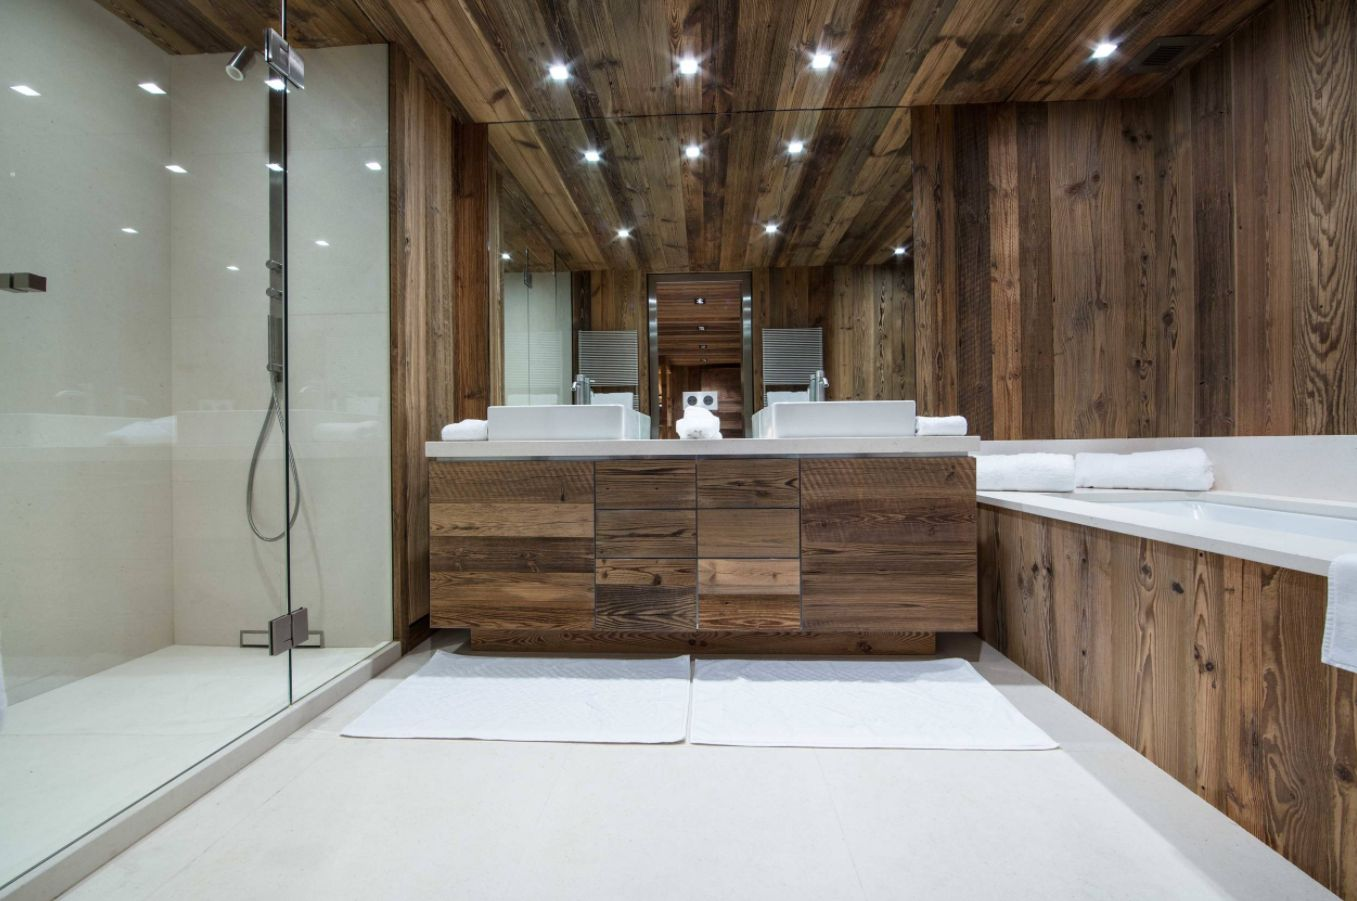 Bathroom Renovation Ideas Pictures Rustic Bathroom Ideas Inspired By Nature S Beauty